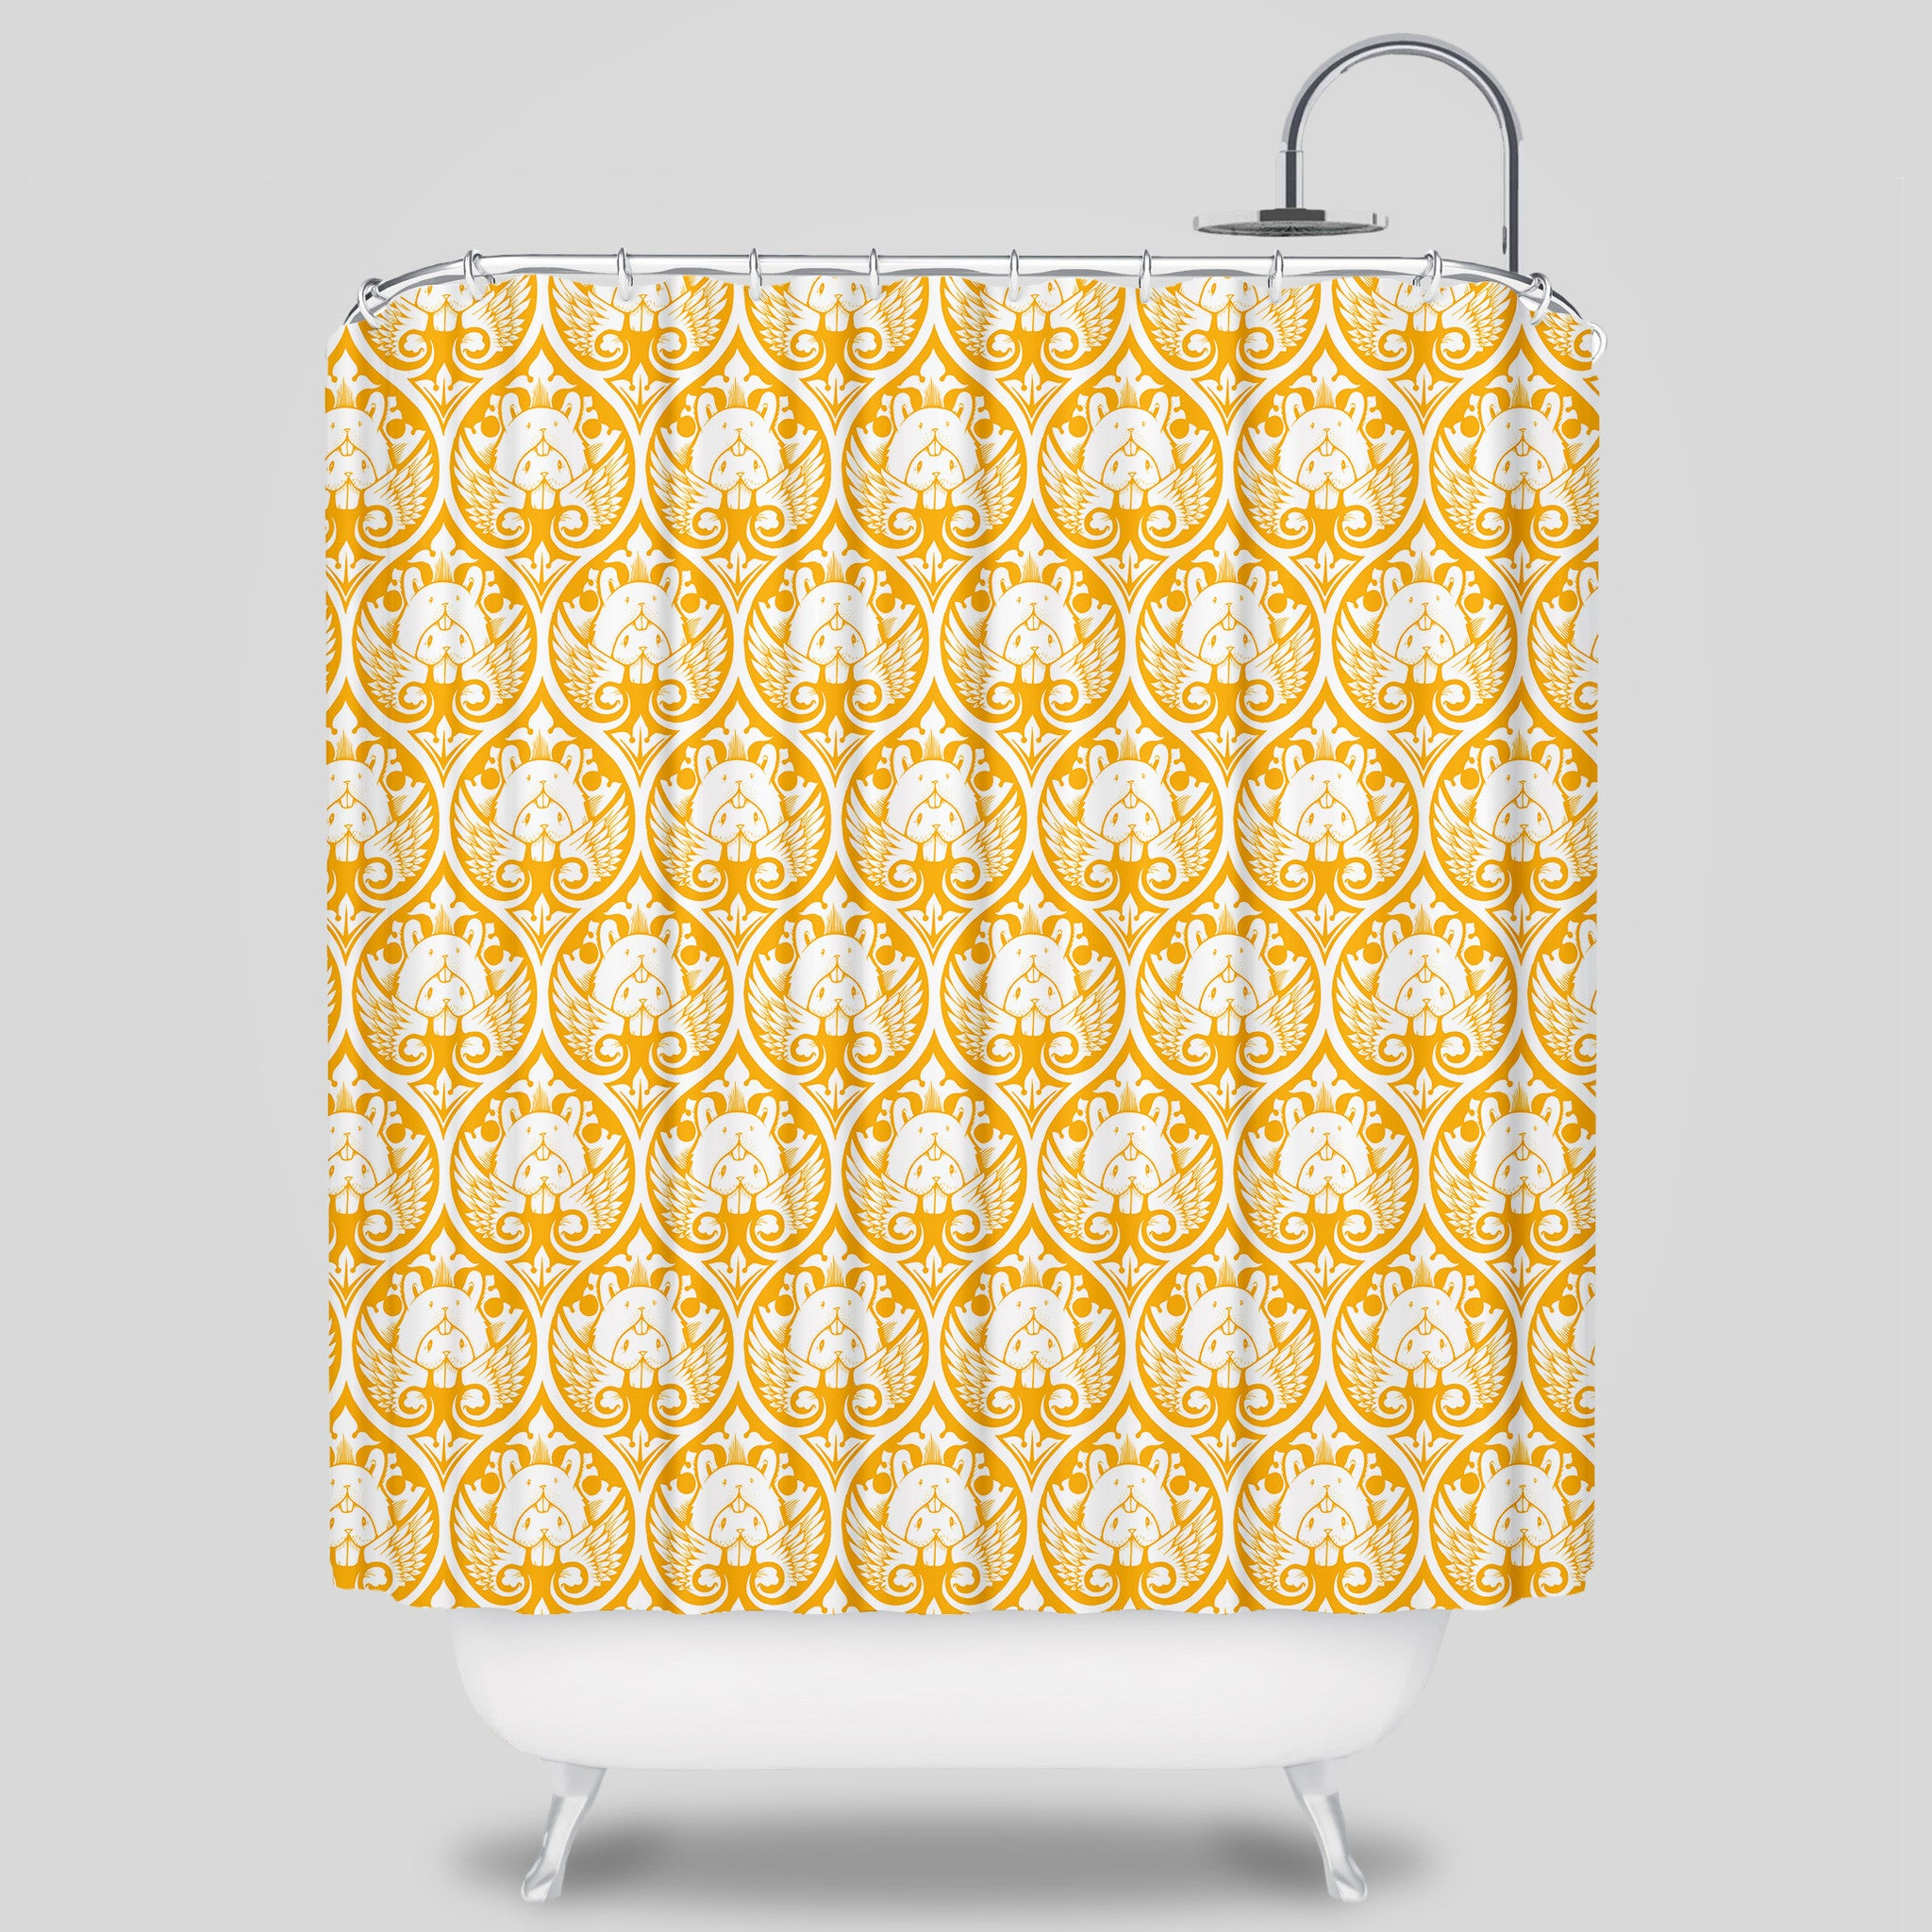 Bunny Wings Shower Curtain By Jeremy Fish